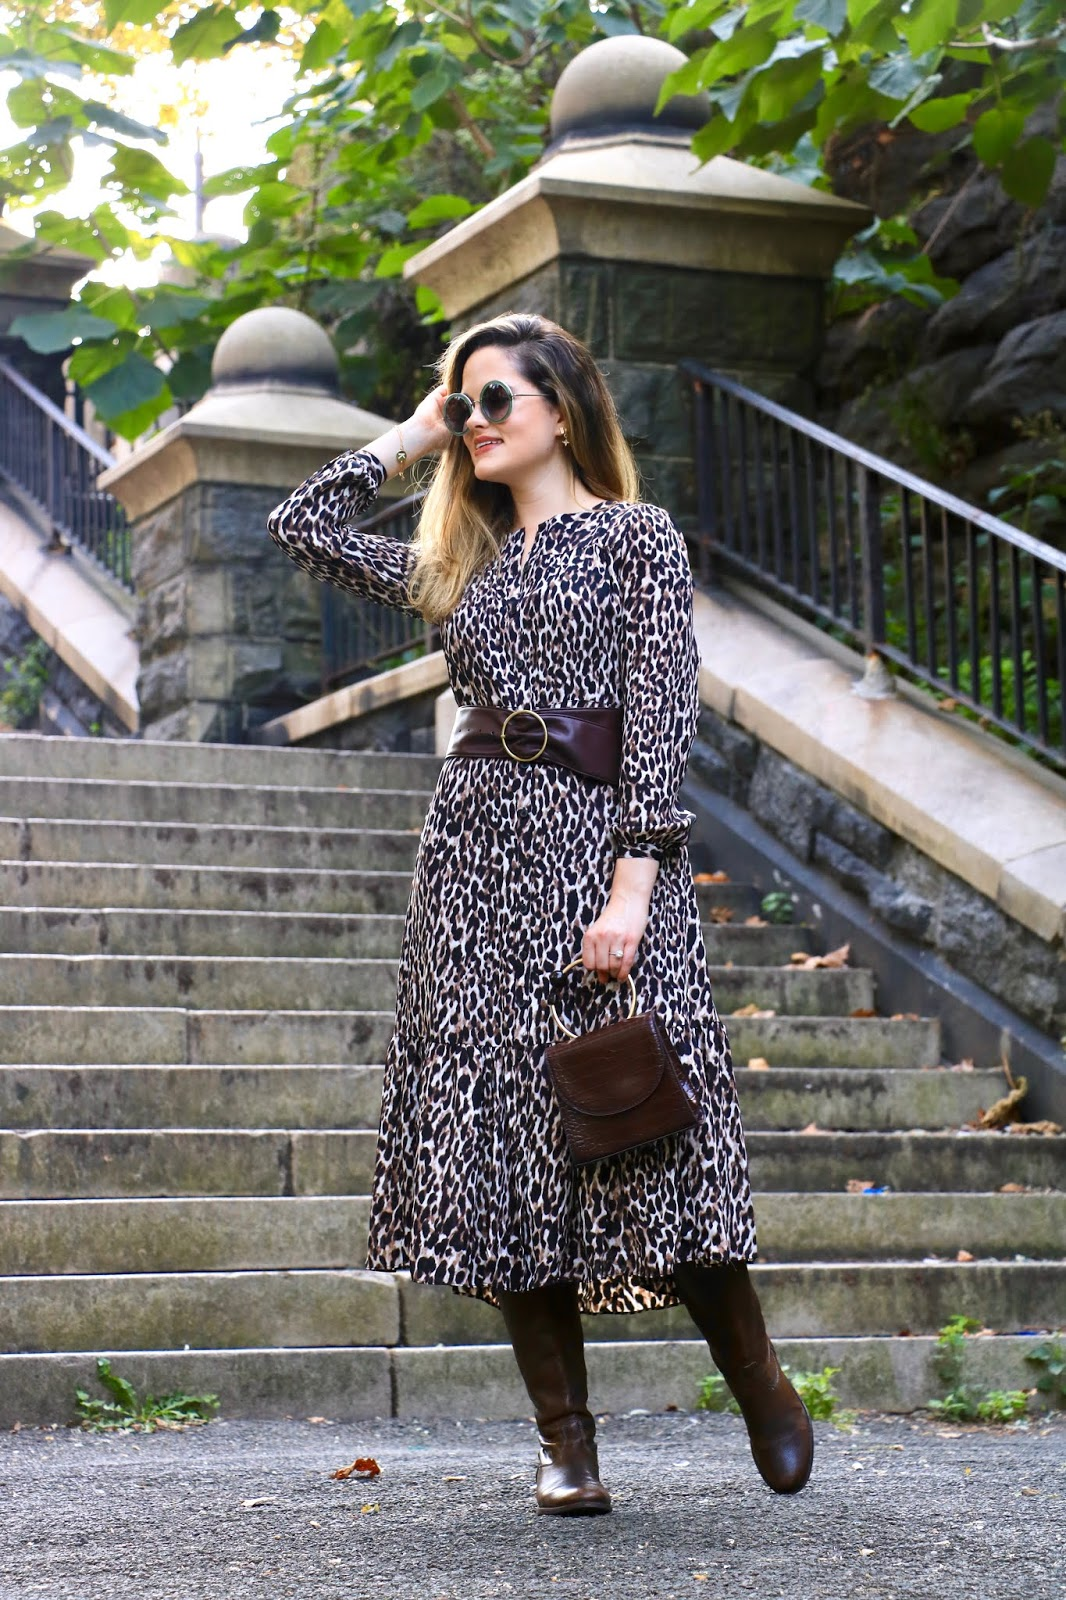 Nyc fashion blogger Kathleen Harper wearing a leopard midi dress.